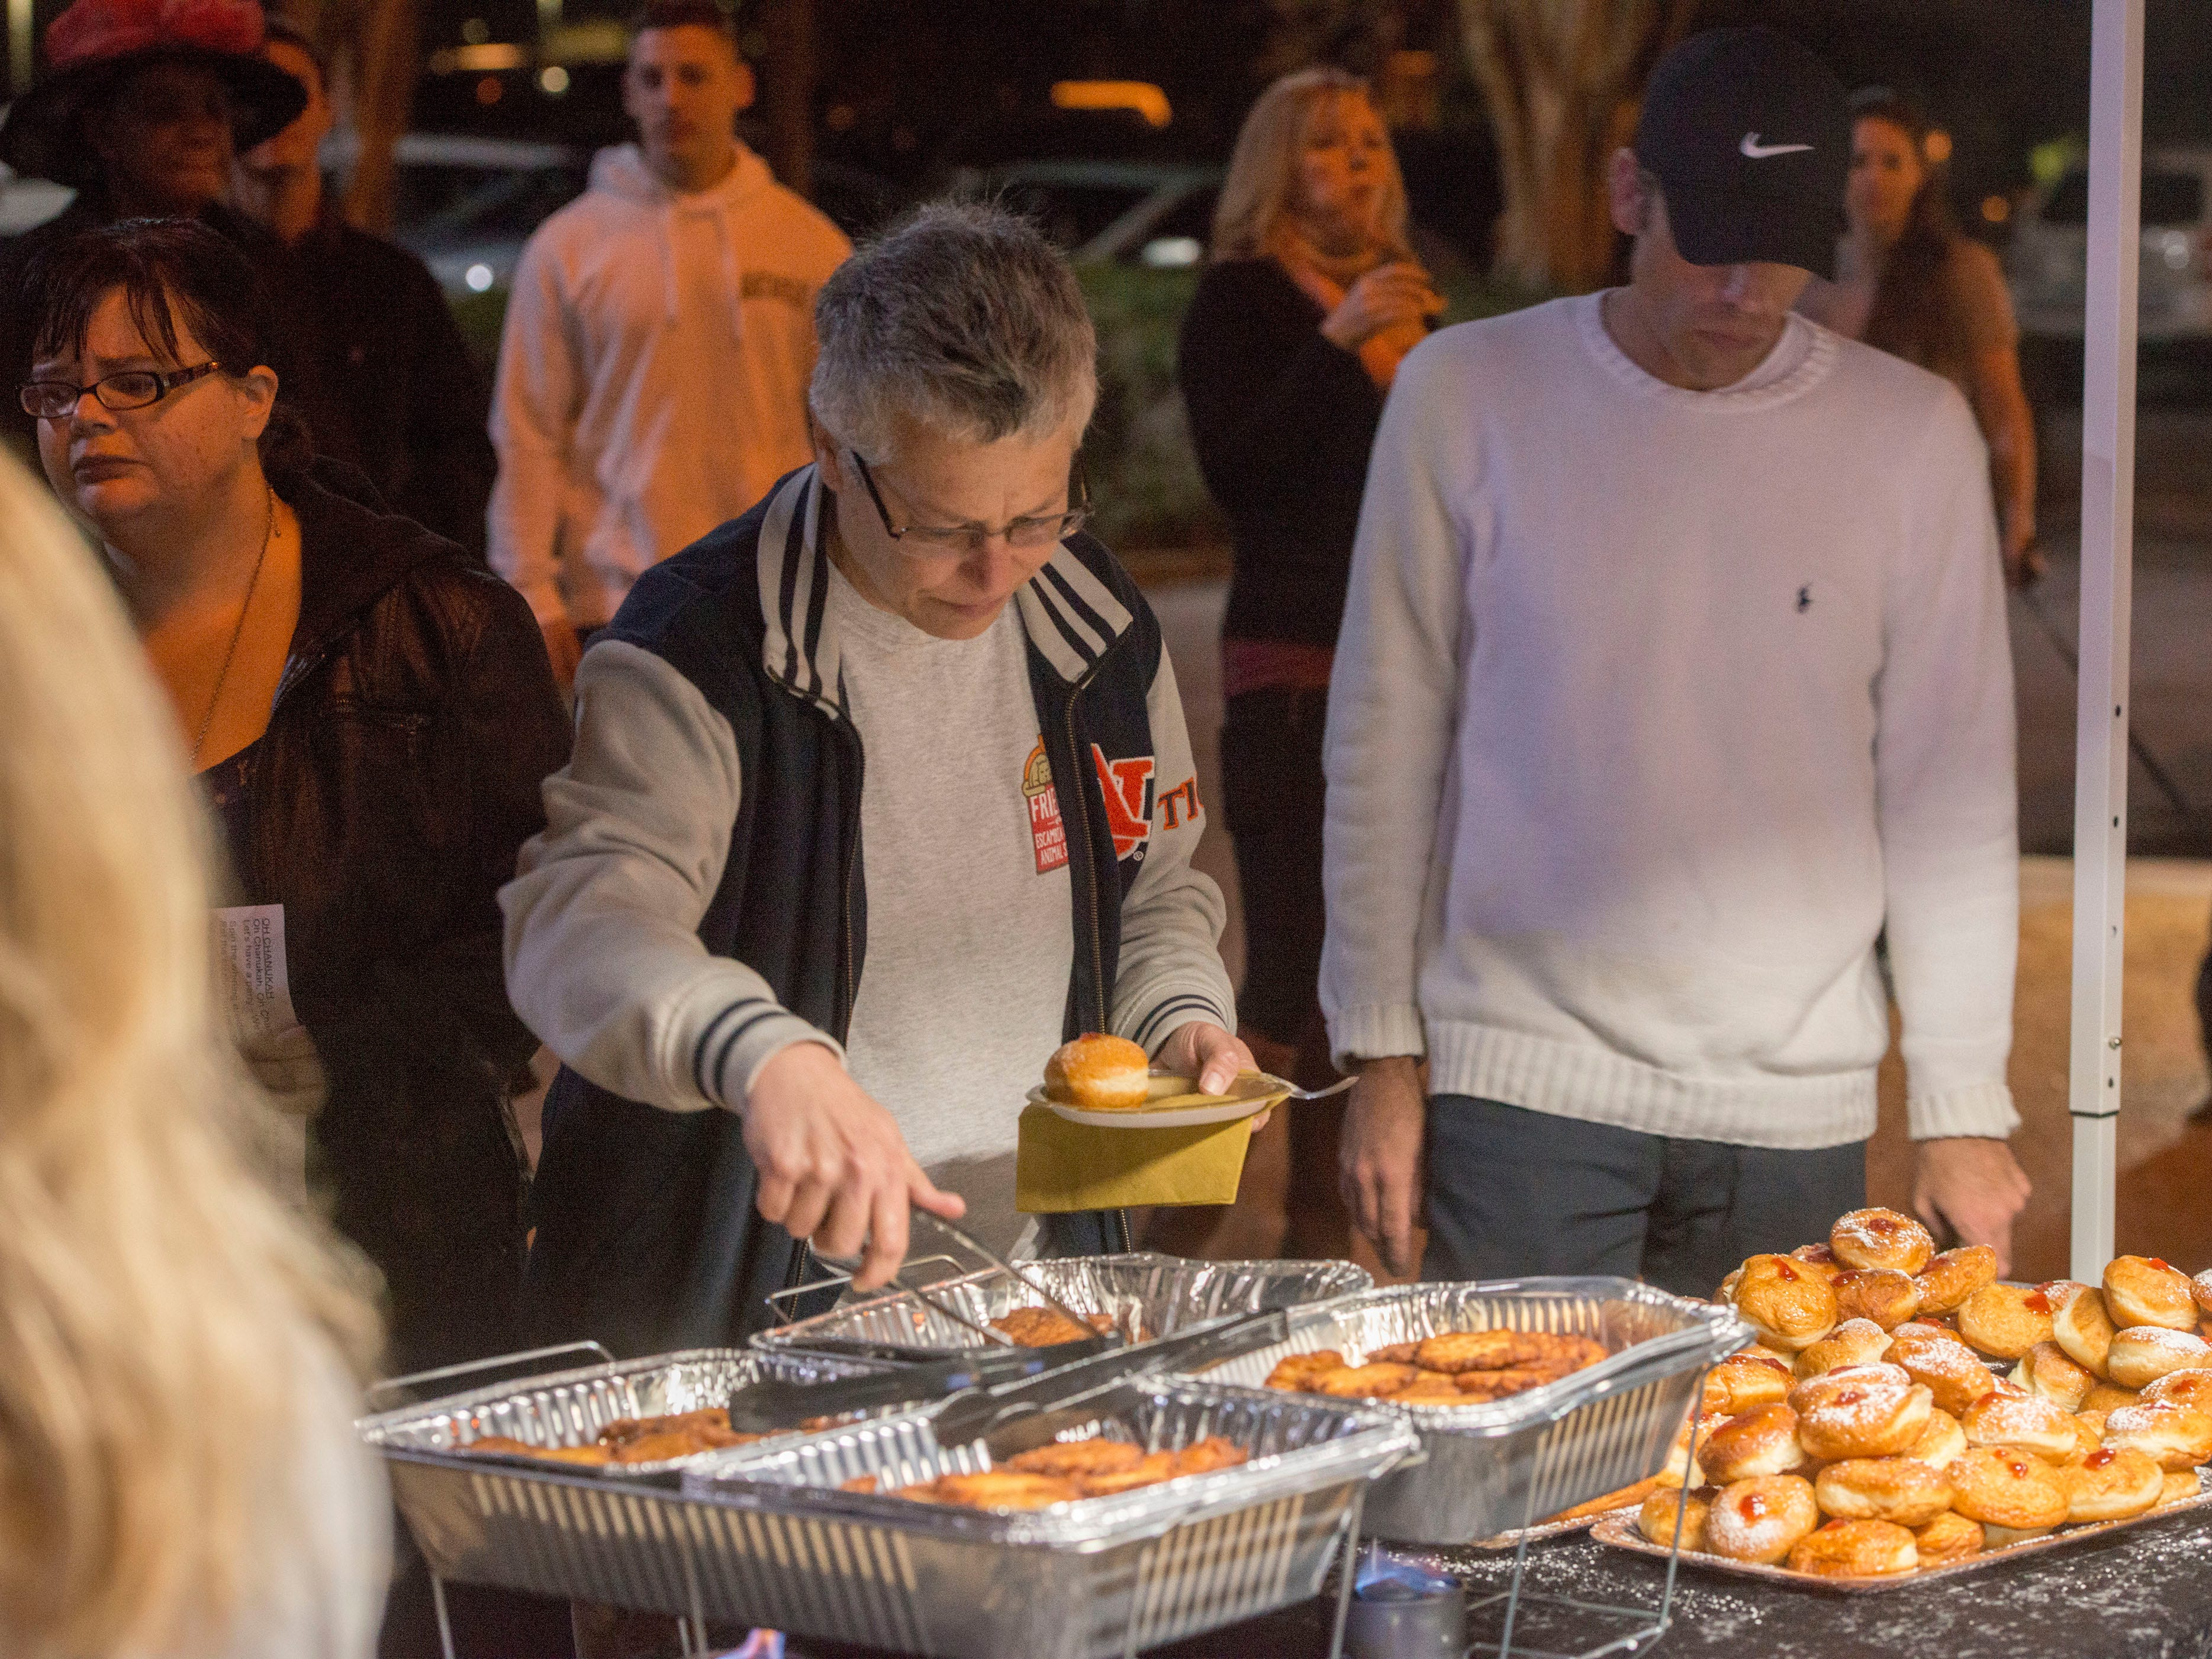 Visitors help themselves to snacks Sunday, December 2, 2018 during the Chabad of Pensacola Grand Menorah Lighting at Pensacola City Hall.